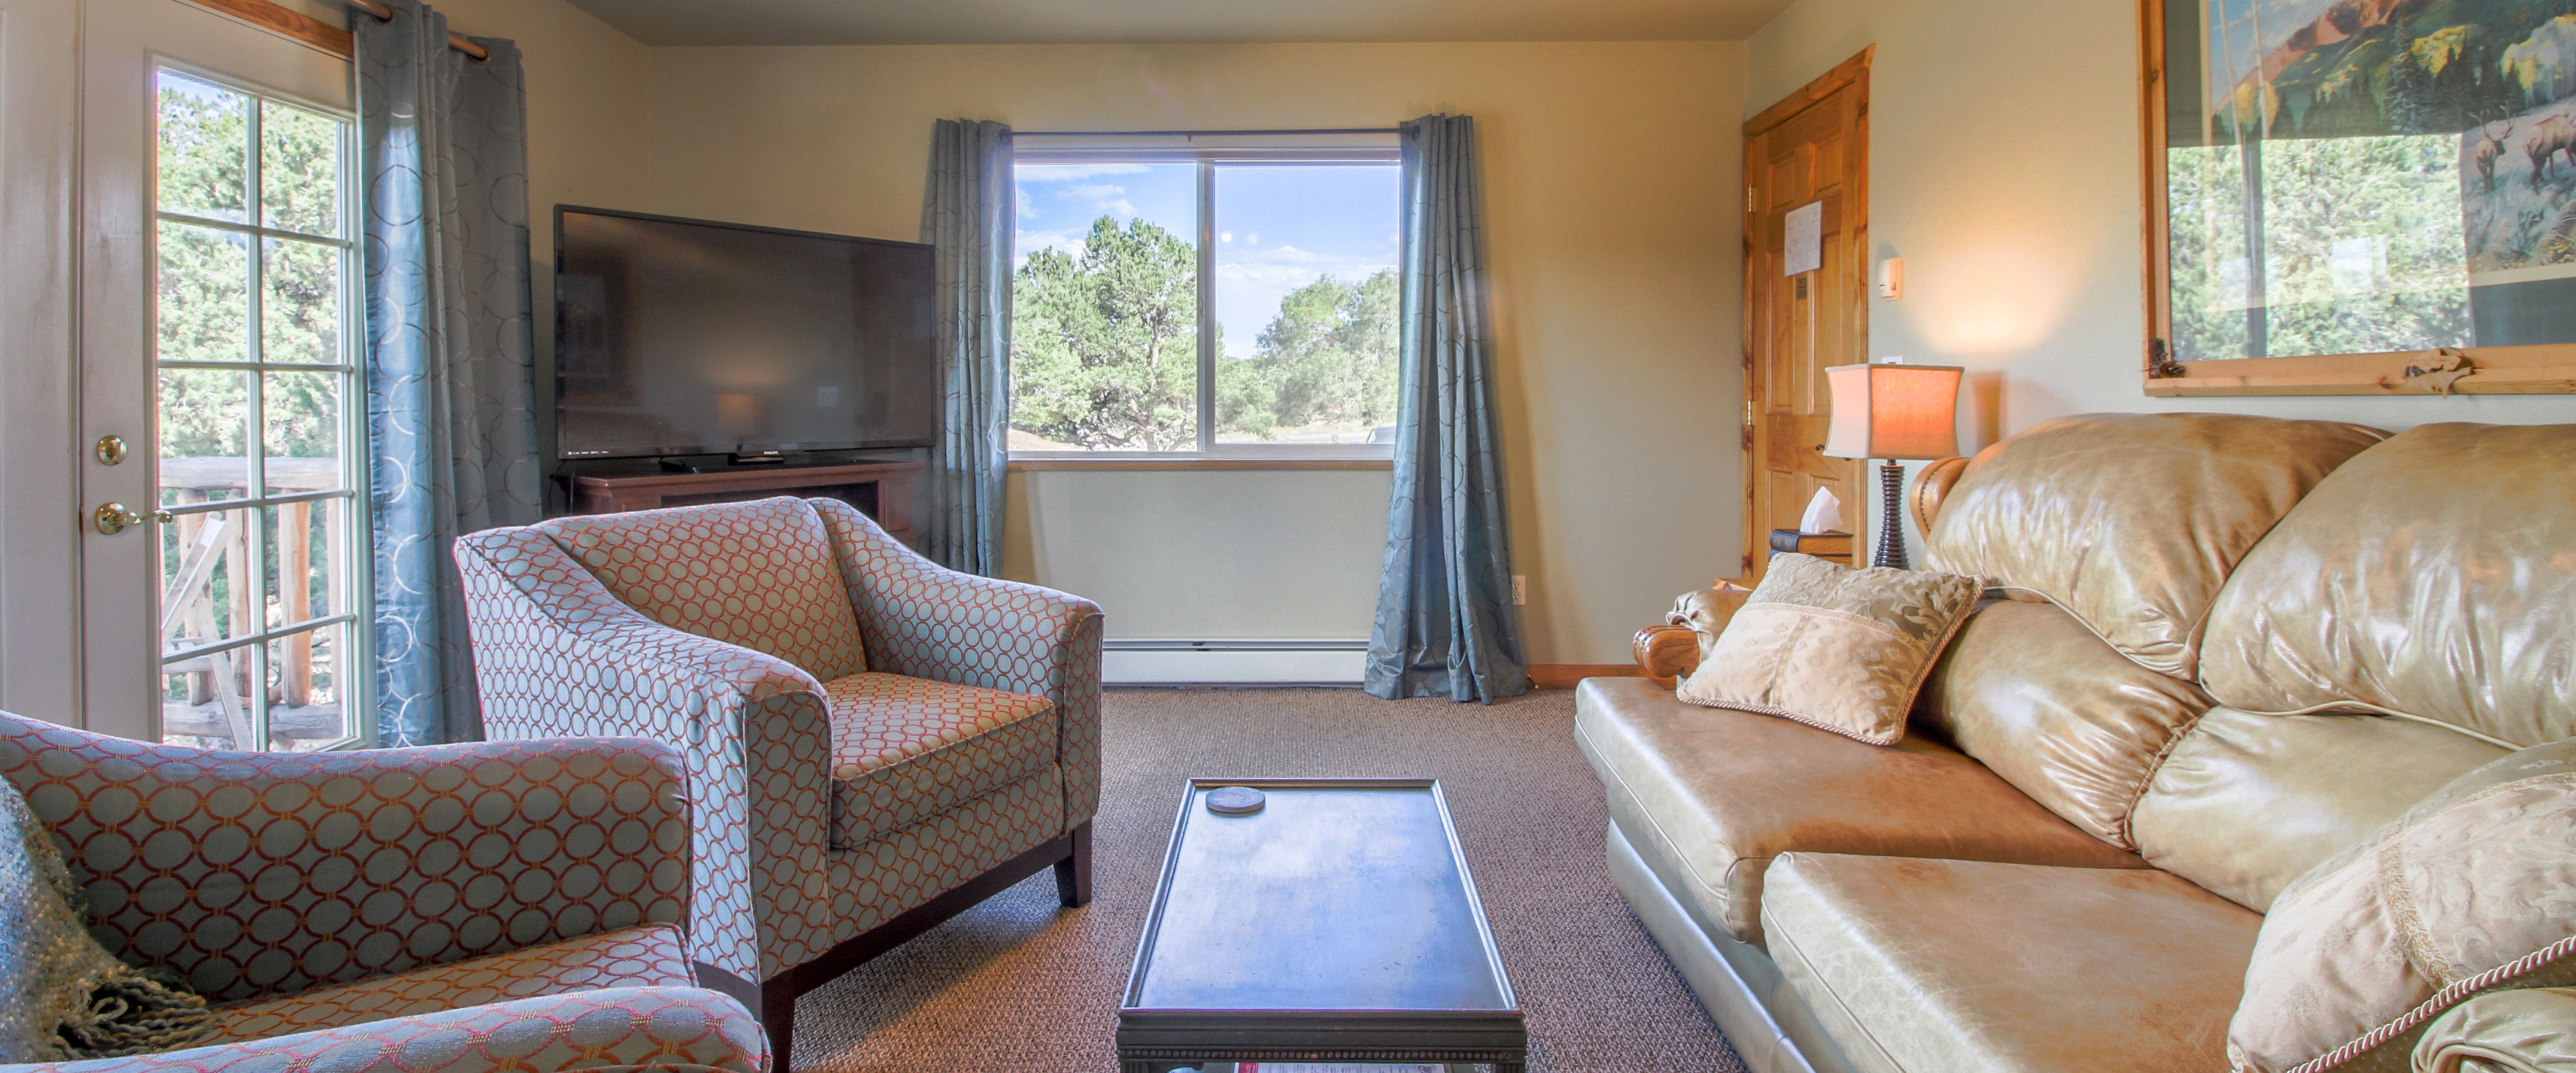 Superb Lodging Accommodations In Salida Co Mountain Goat Lodge Home Interior And Landscaping Spoatsignezvosmurscom